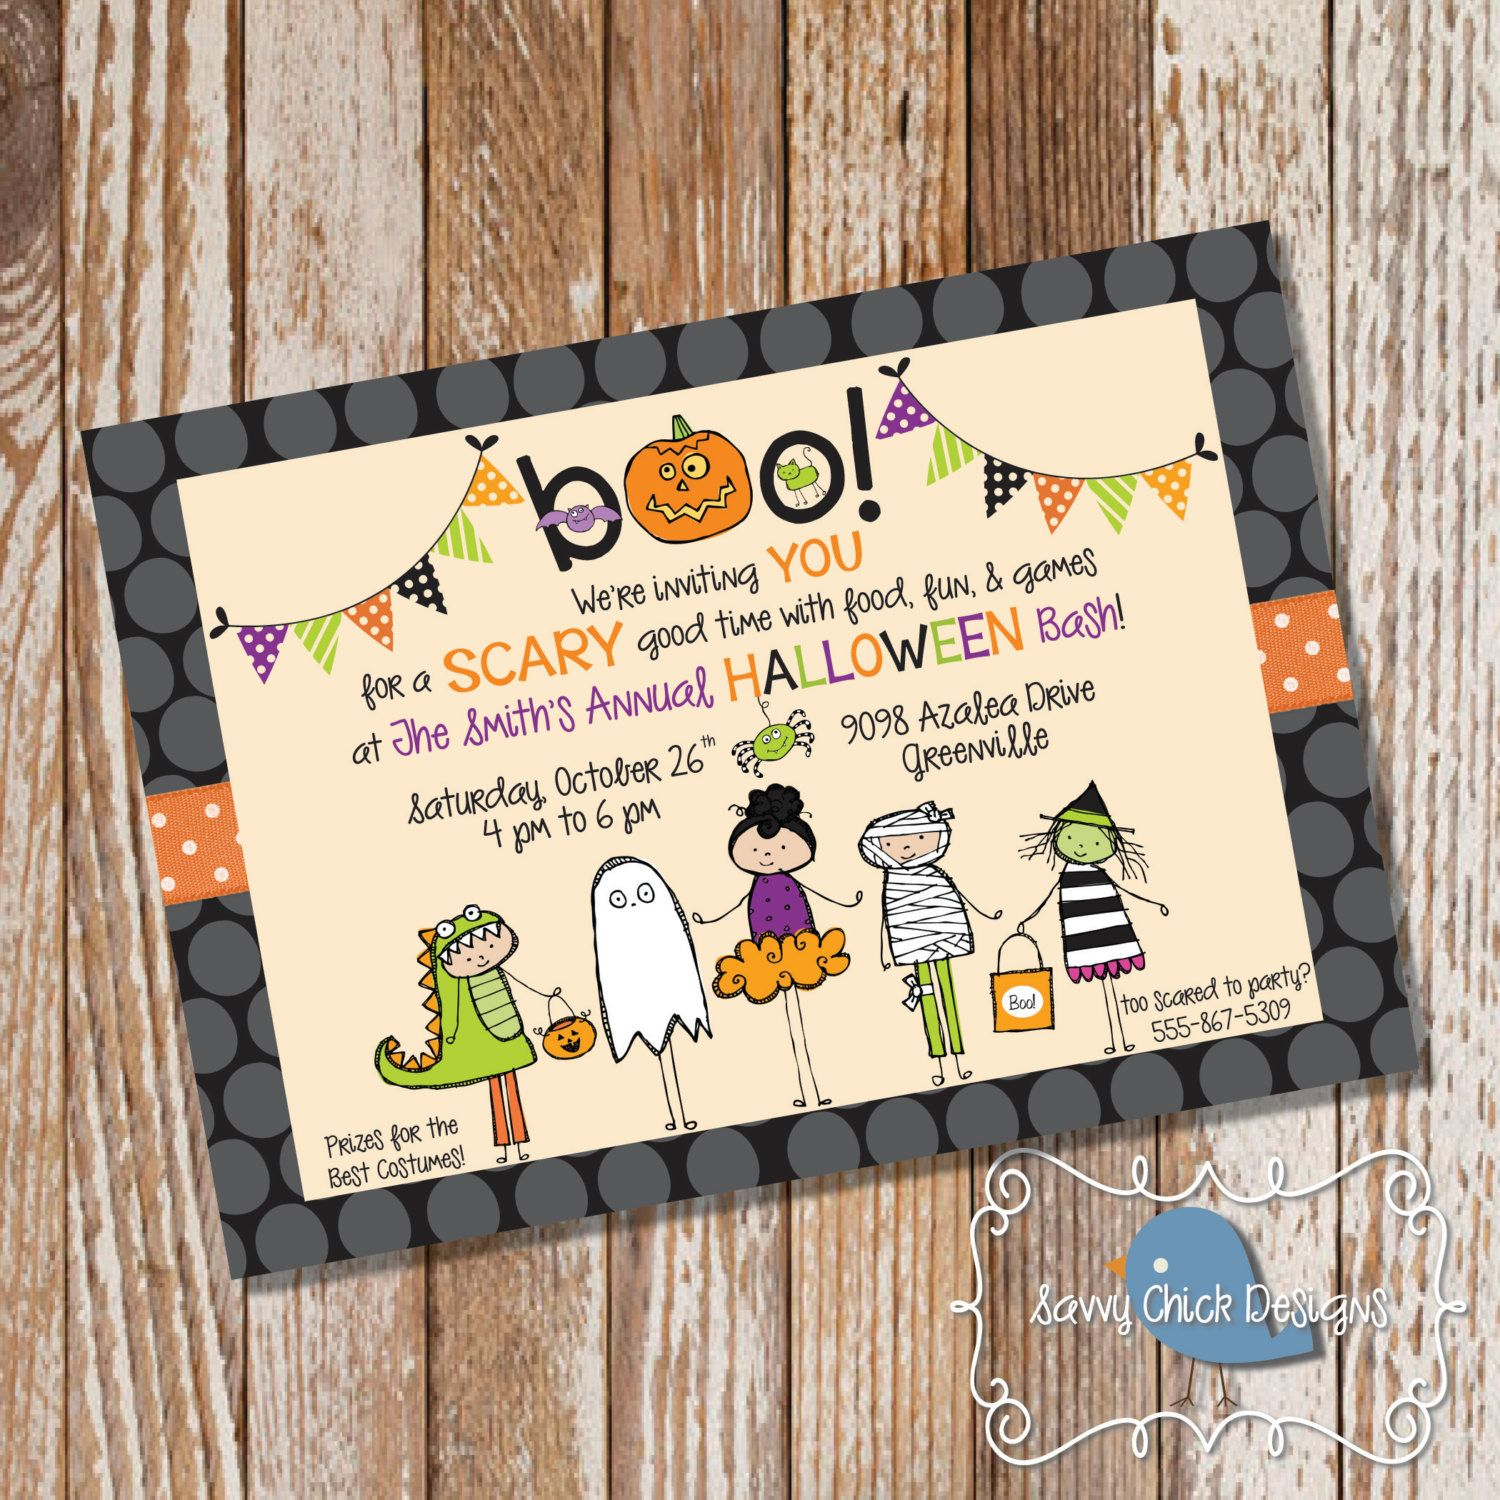 DIY Halloween Party Invitations Cute Costume Party | Halloween ...